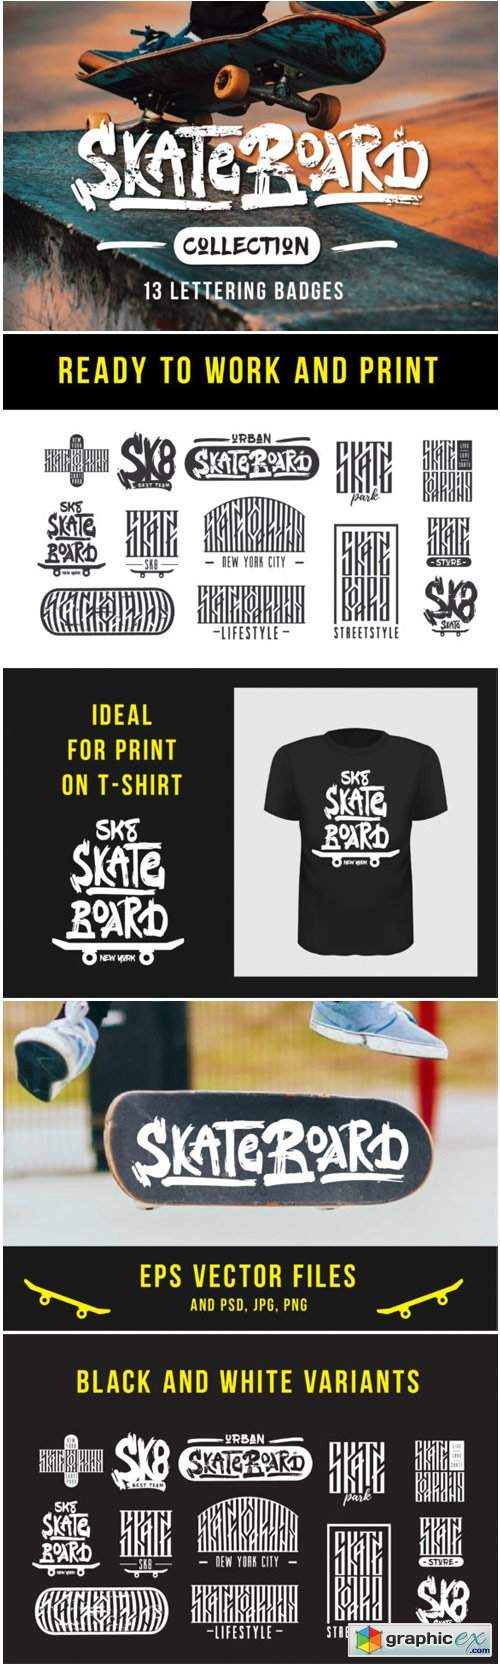 Skateboarding T-shirt Design